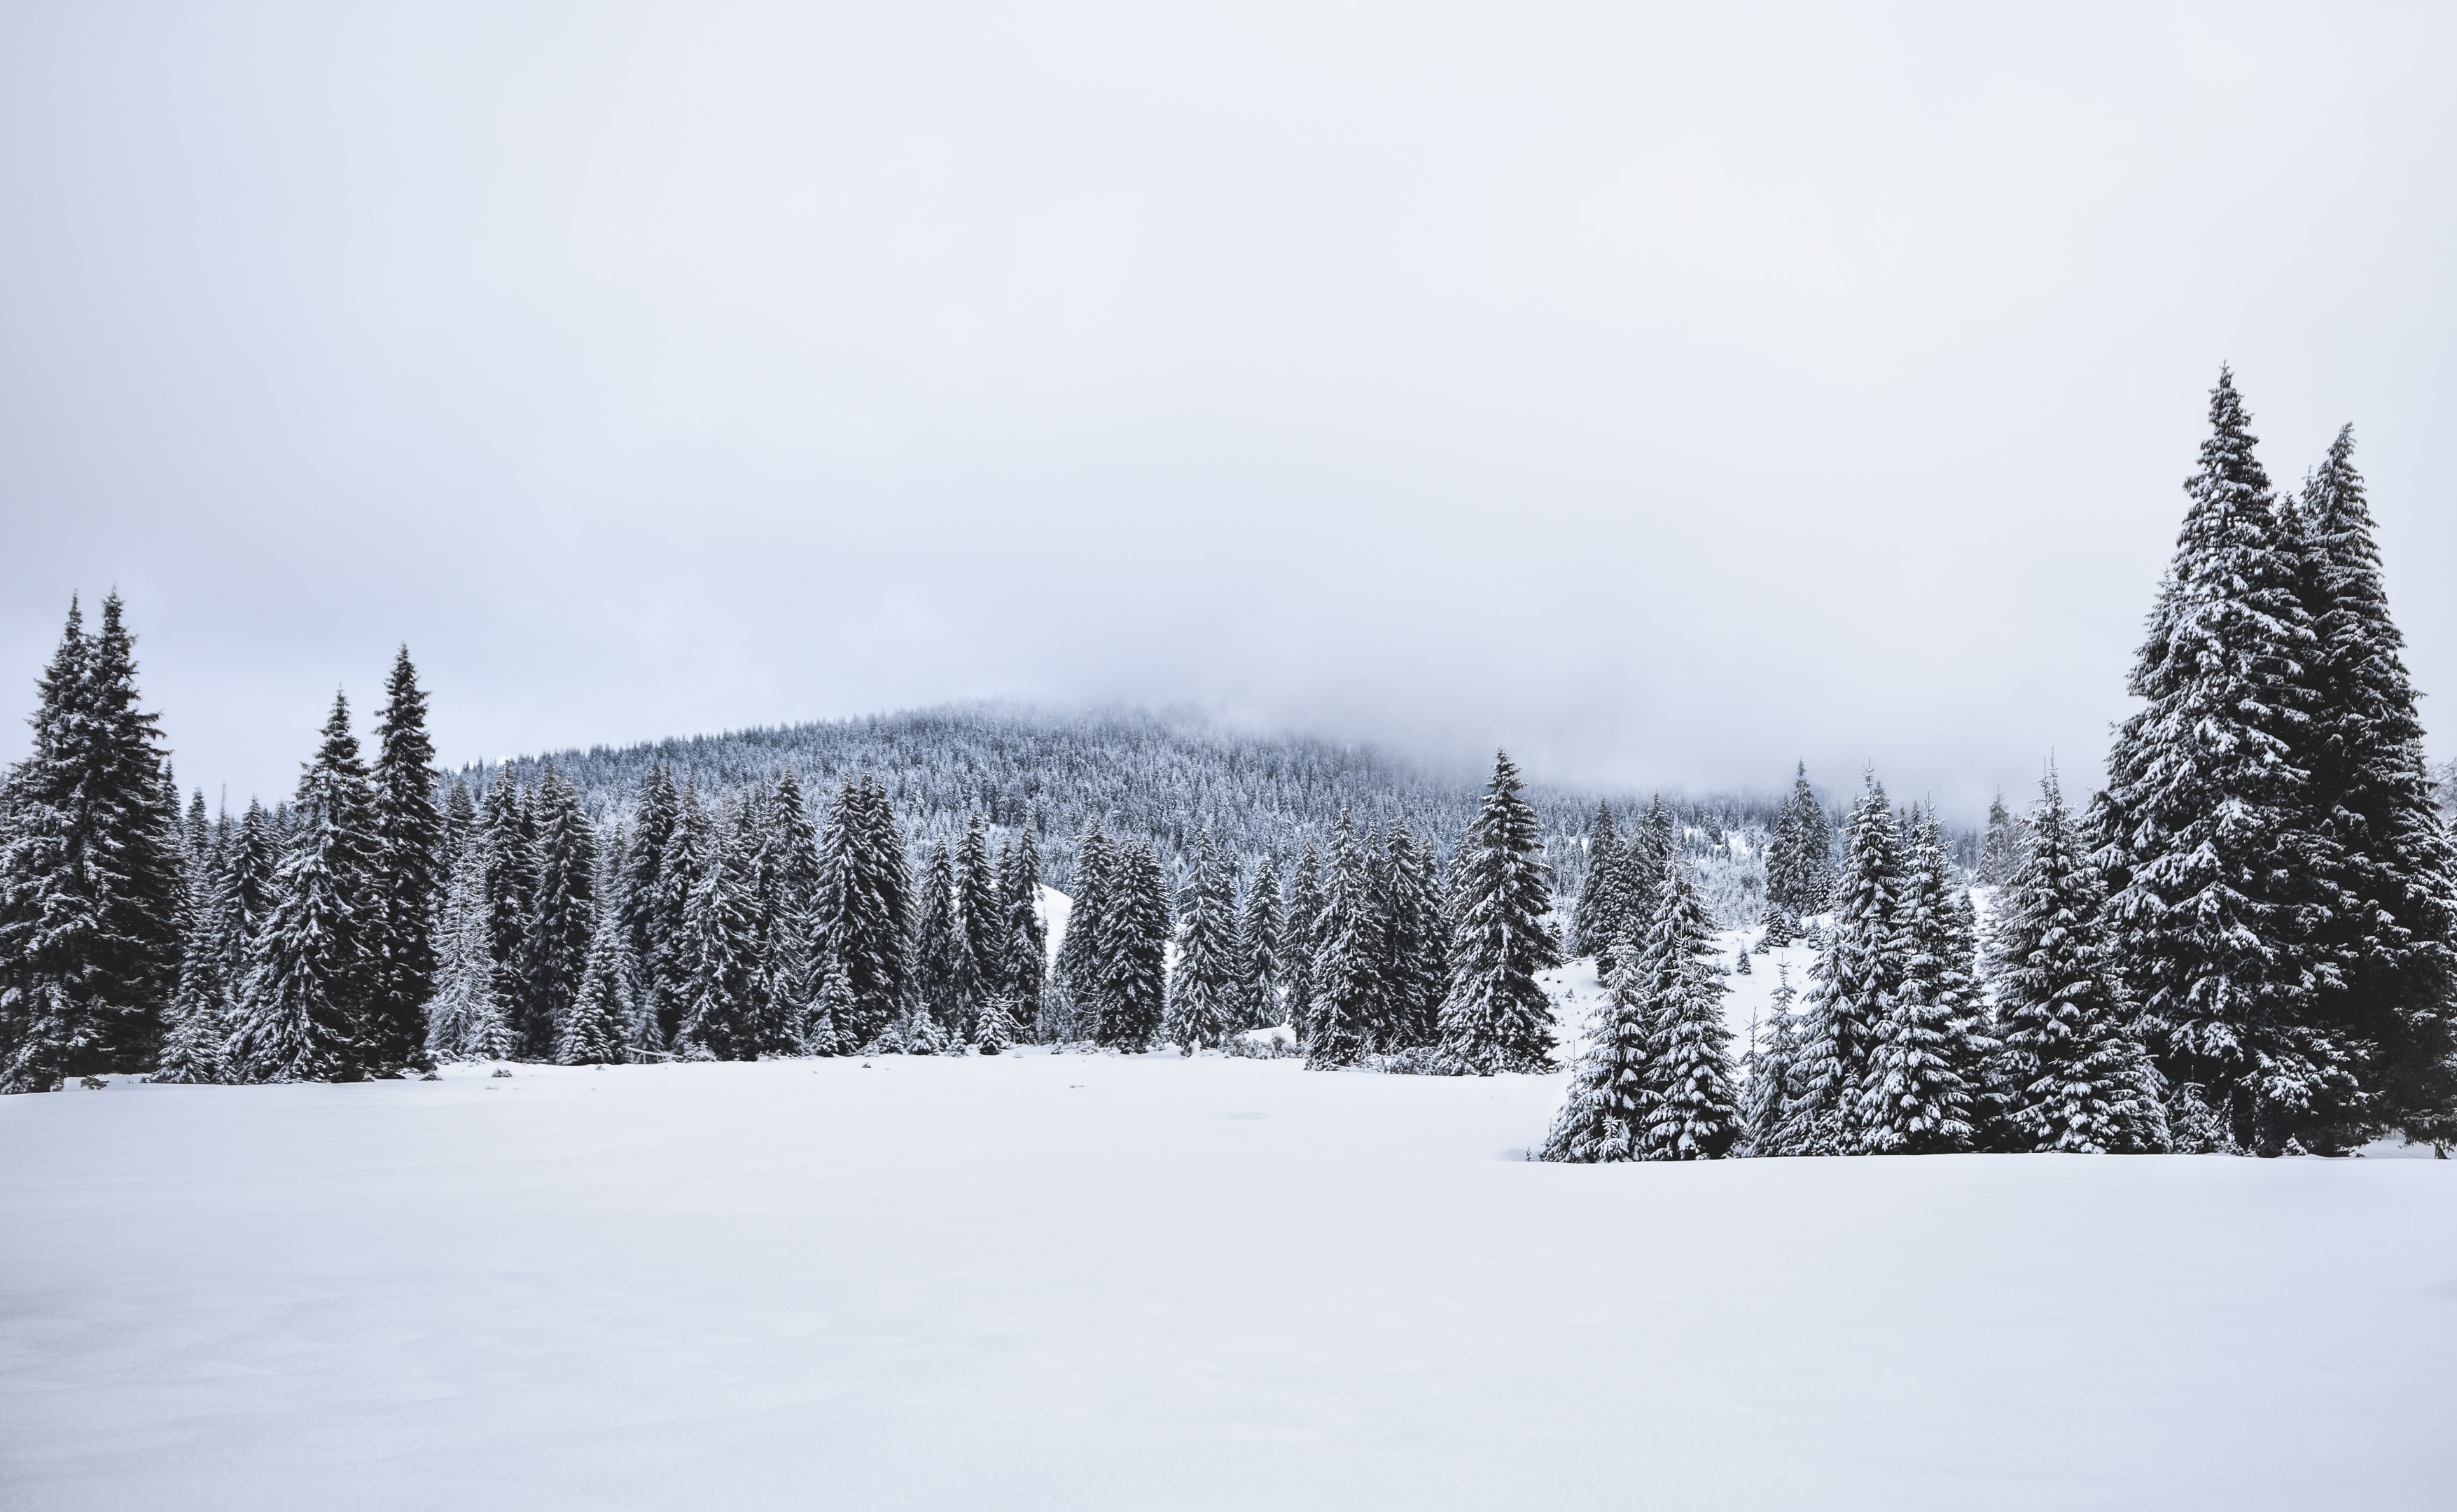 landscape photo of pine trees covered with snow